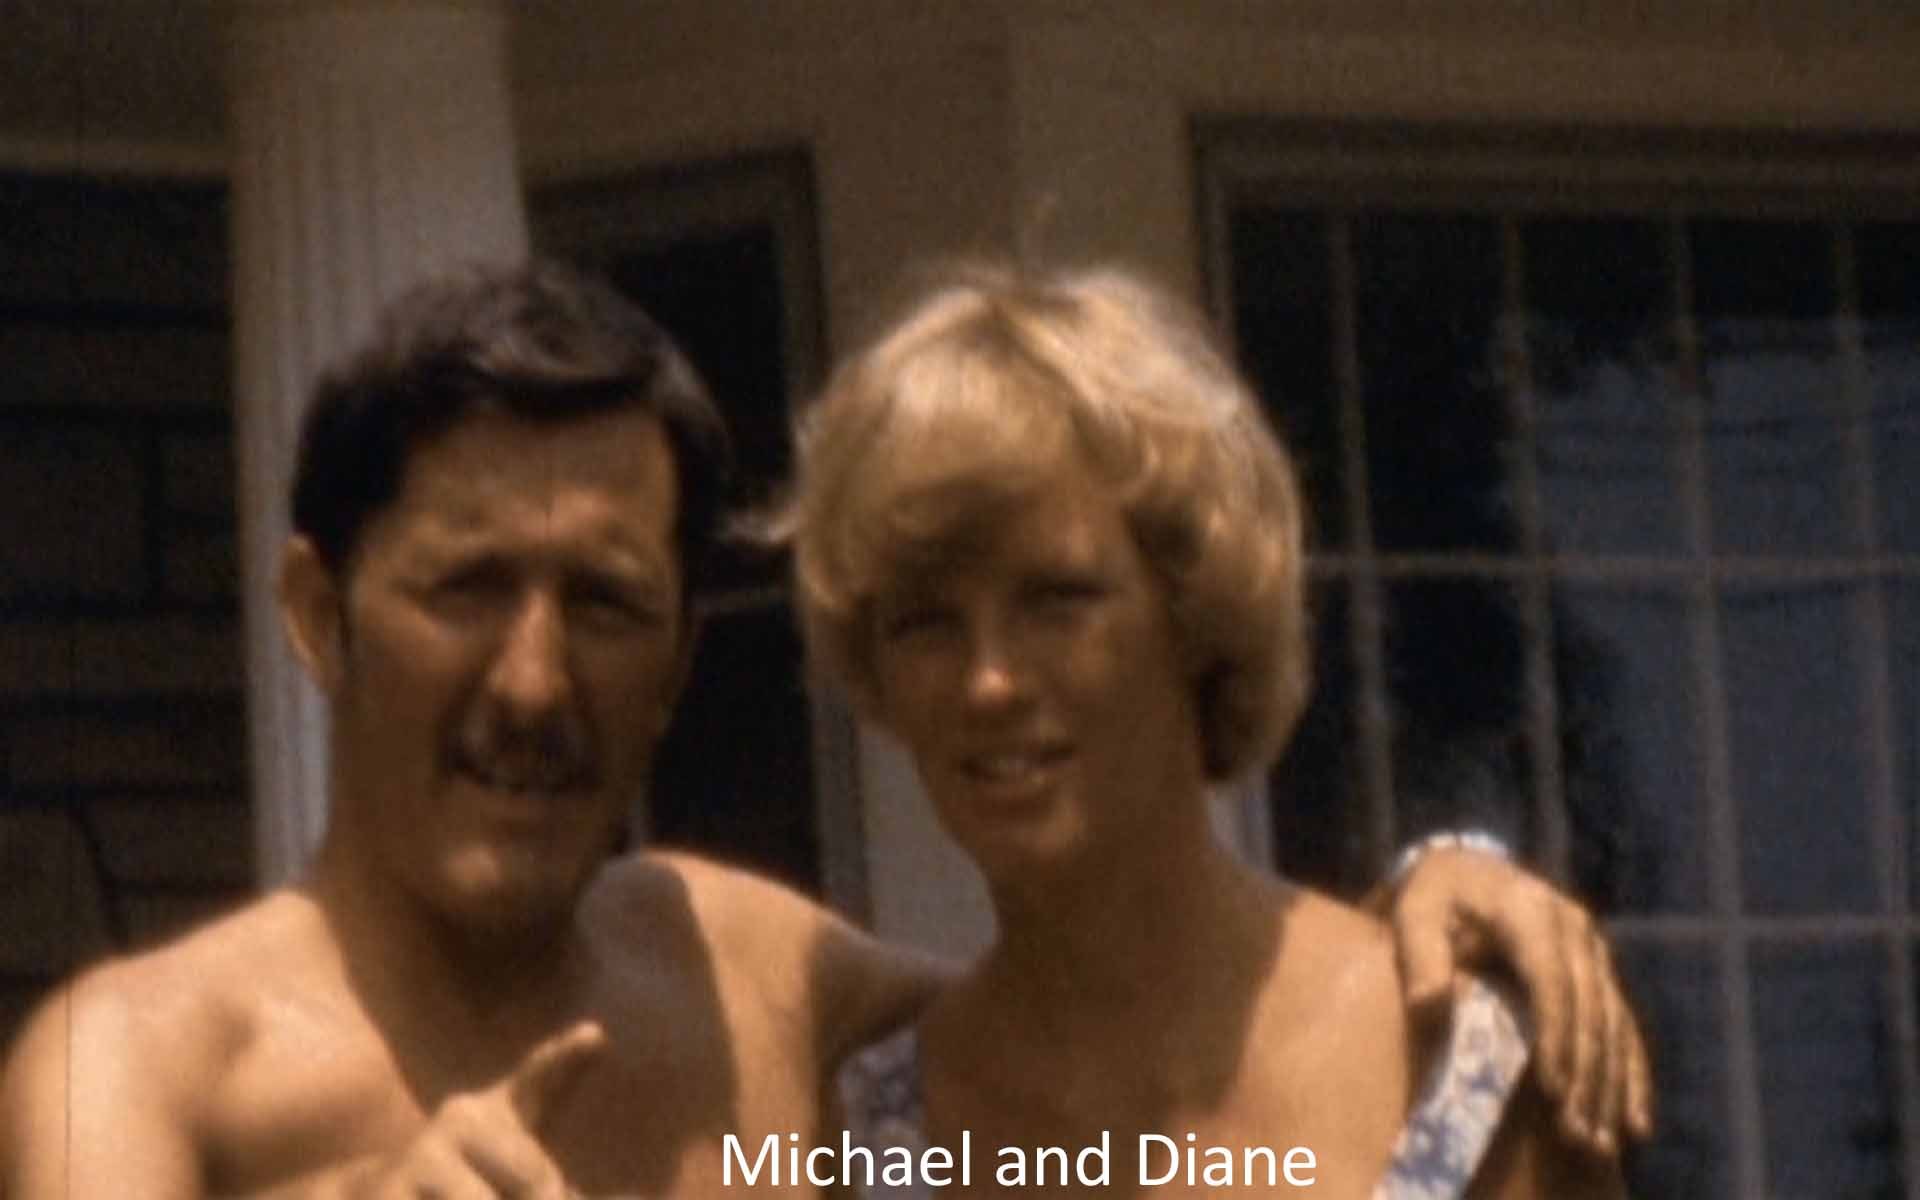 Michael and Diane